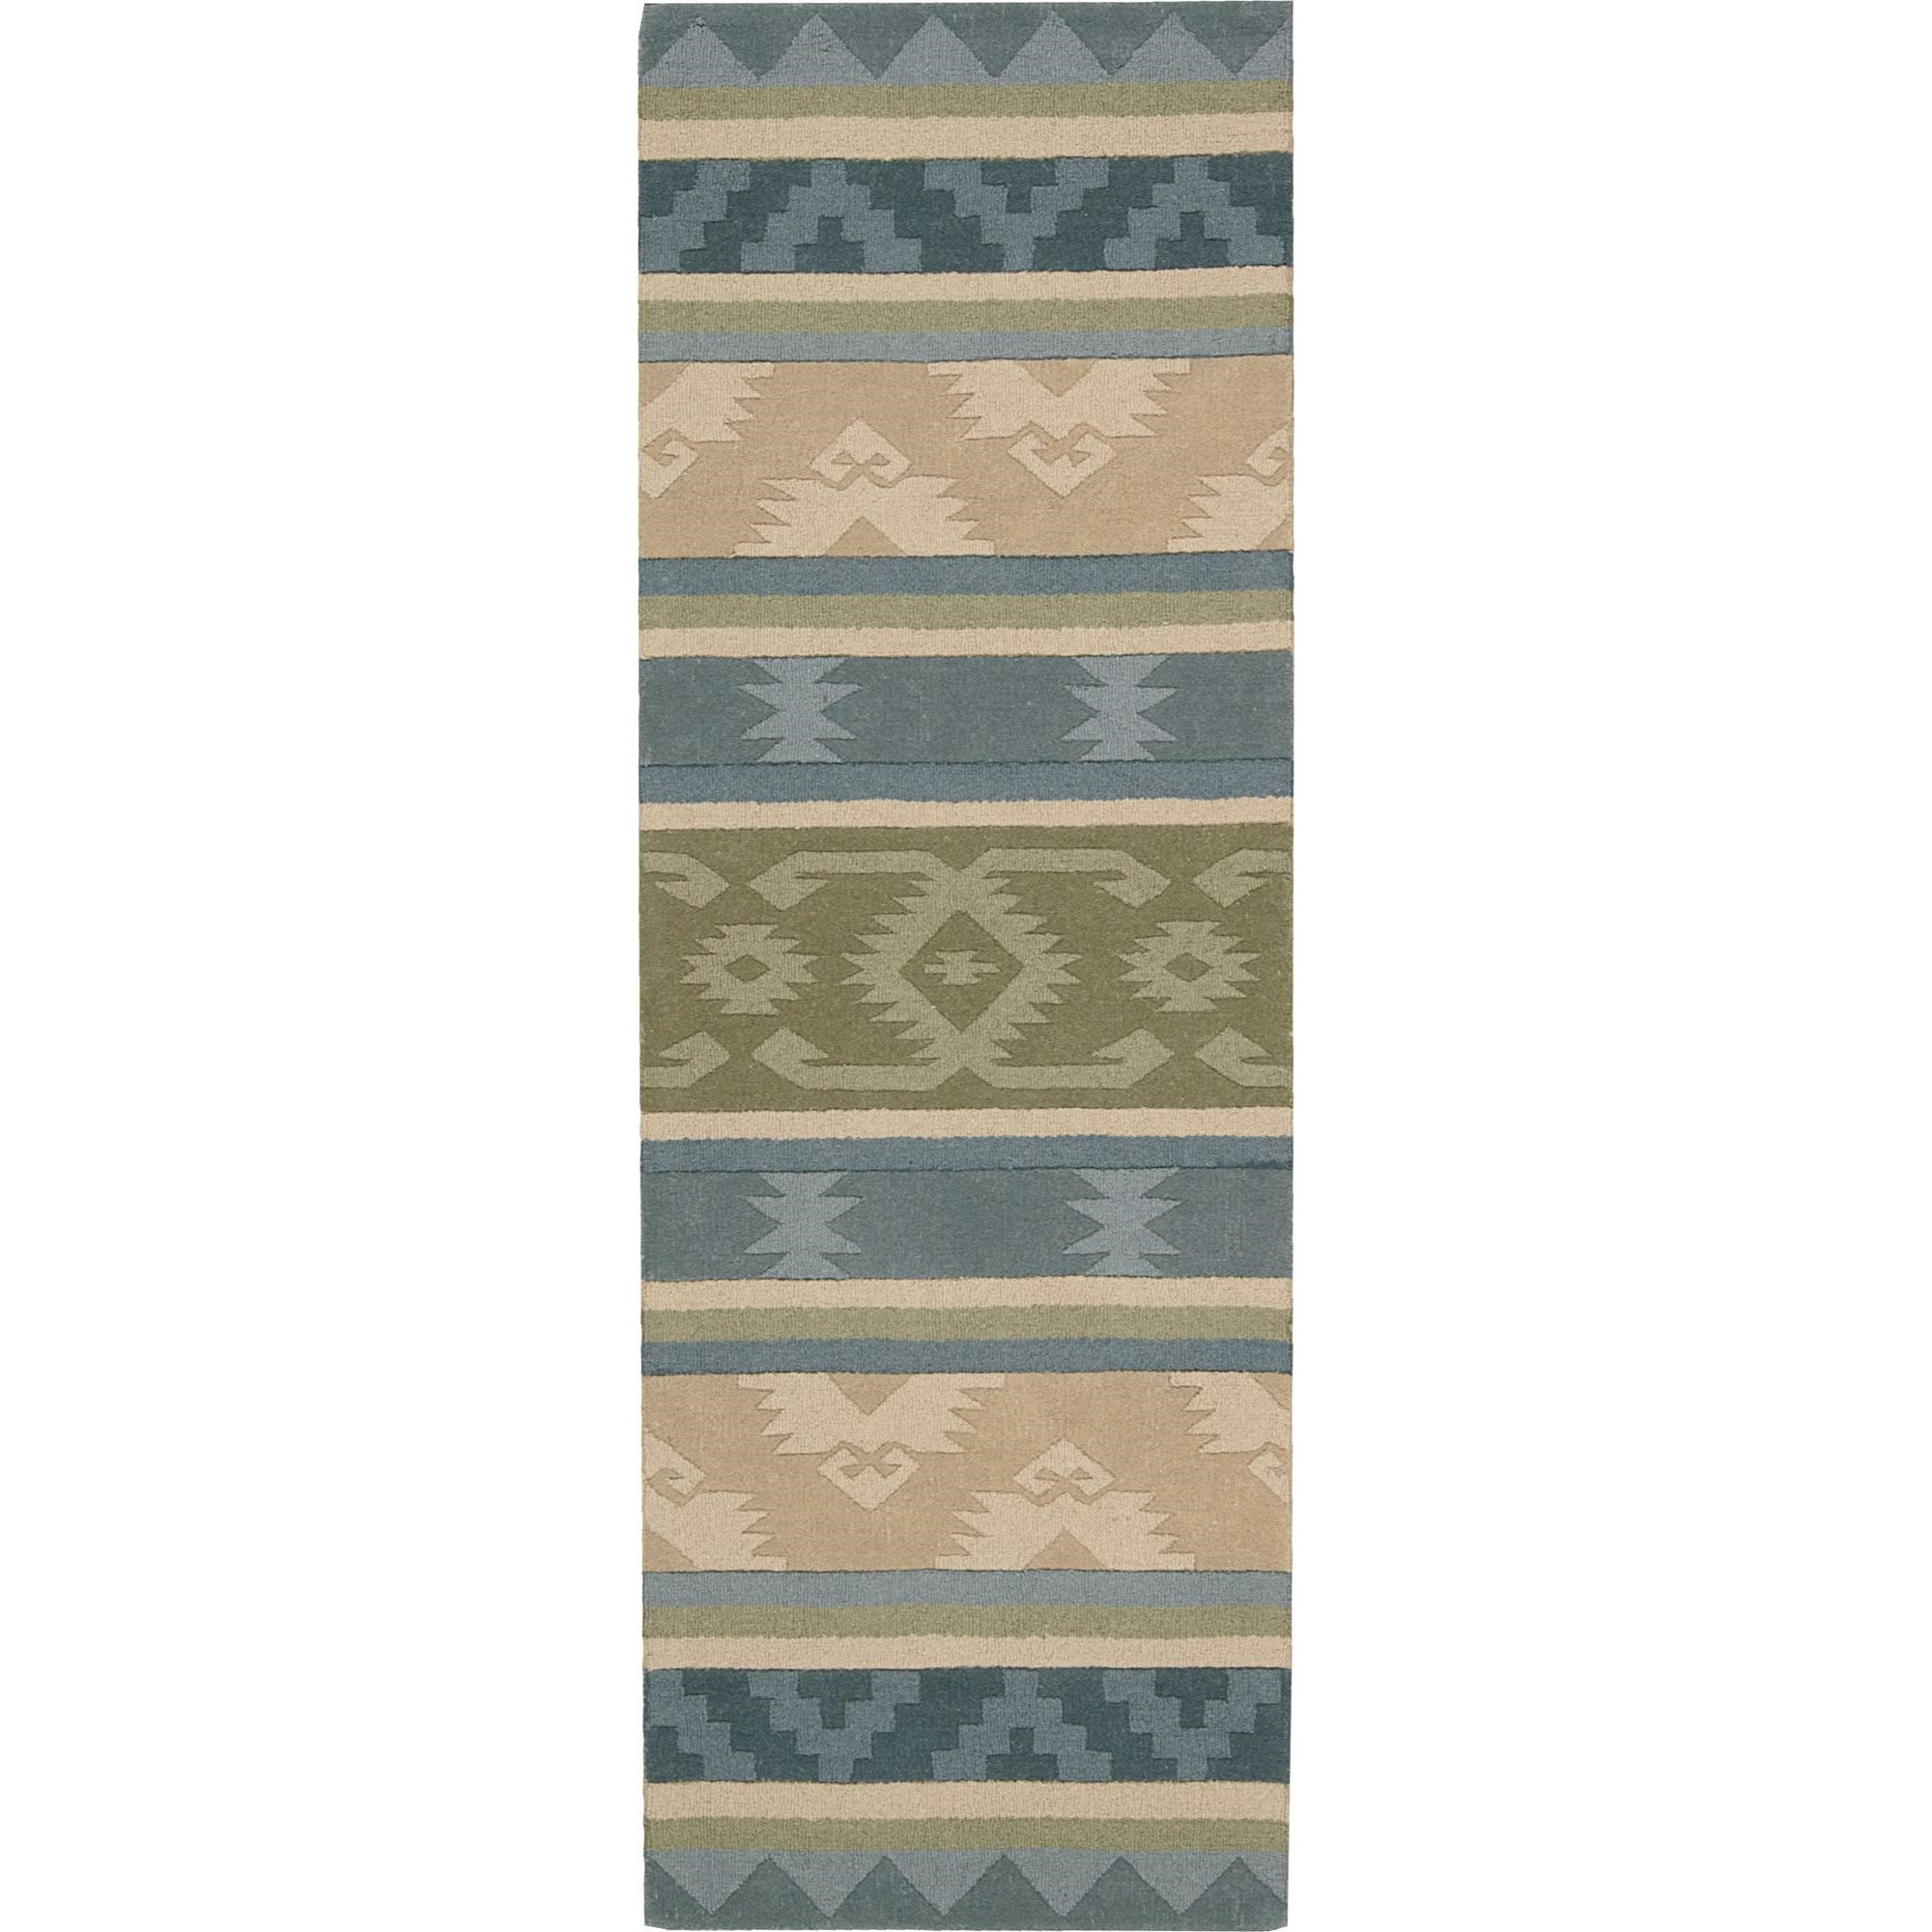 """Nourison India House 2'3"""" x 7'6"""" Blue Green Area Rug - Item Number: 22001"""